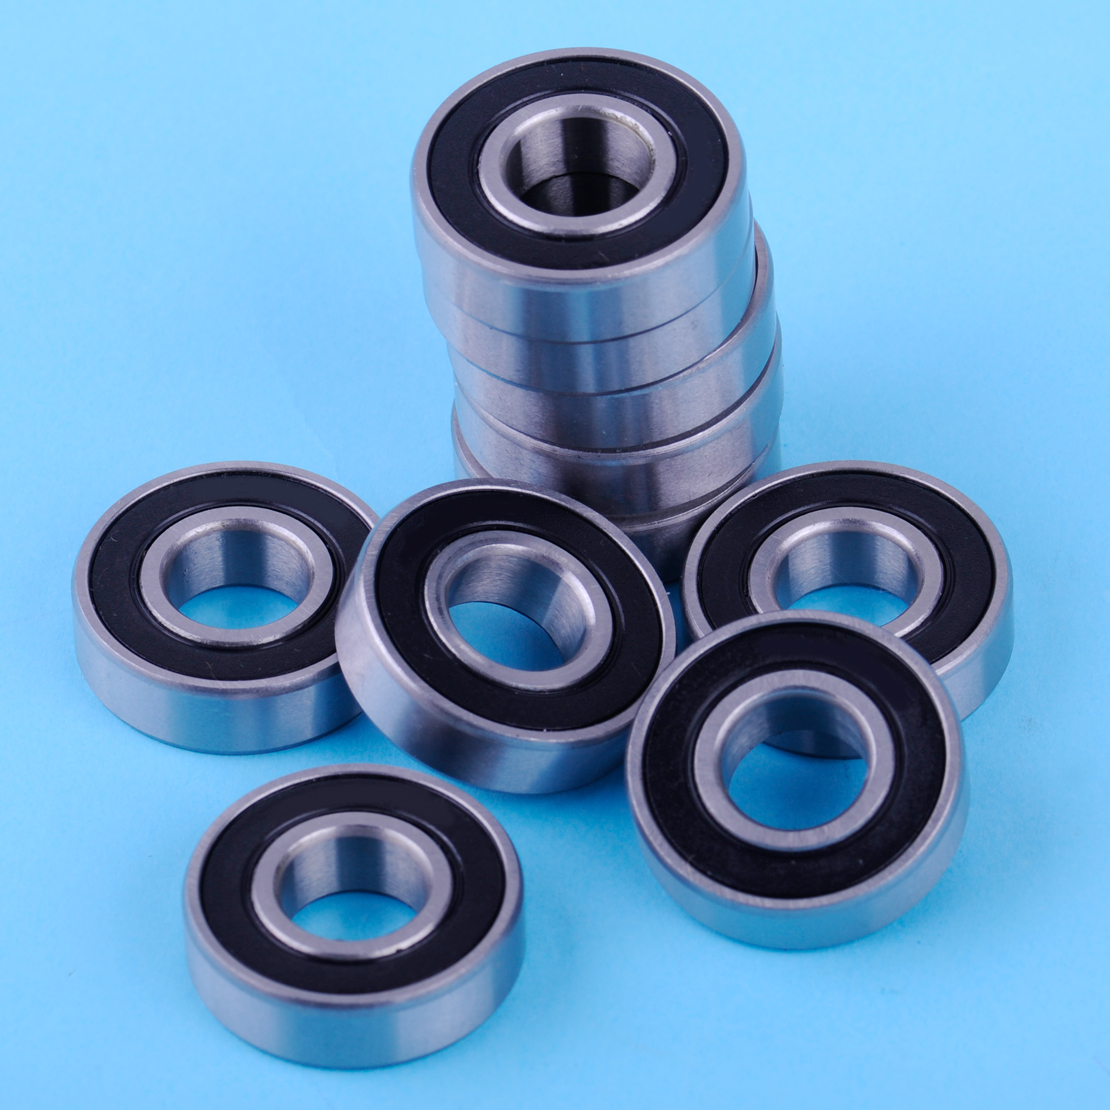 10Pcs Sealed Deep Groove Ball Bearings Steel Ball Roller 6001-2Rs 12 X 28 X 8mm